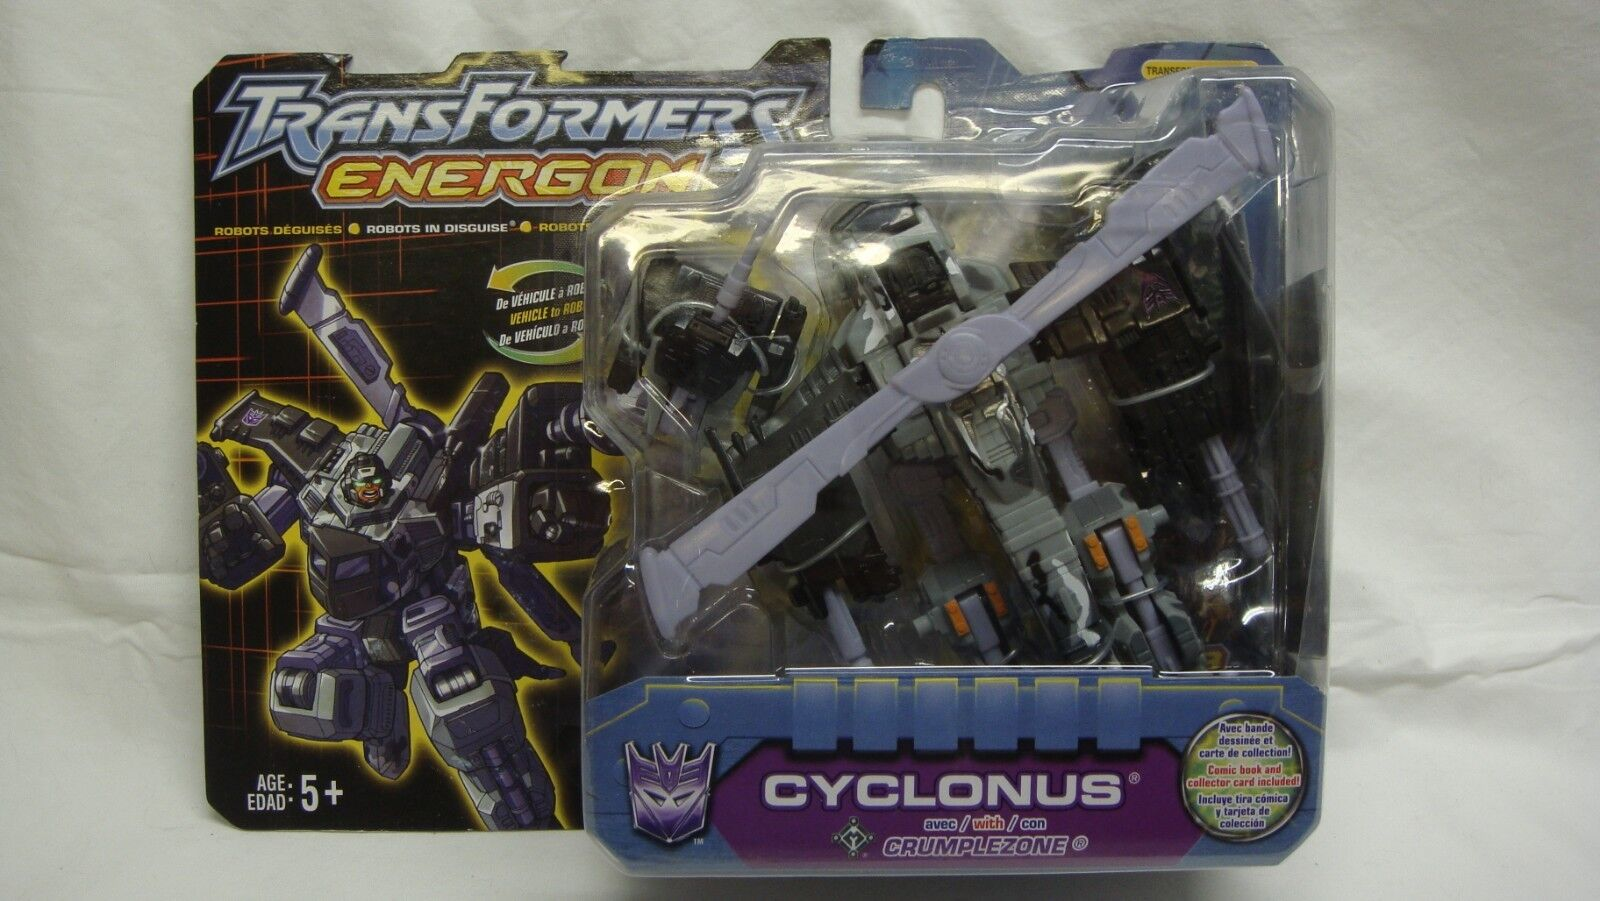 TRANSFORMERS ENERGON RID CYCLONUS CRUMPLEZONE ROBOTS IN DISGUISE NEW SEALED